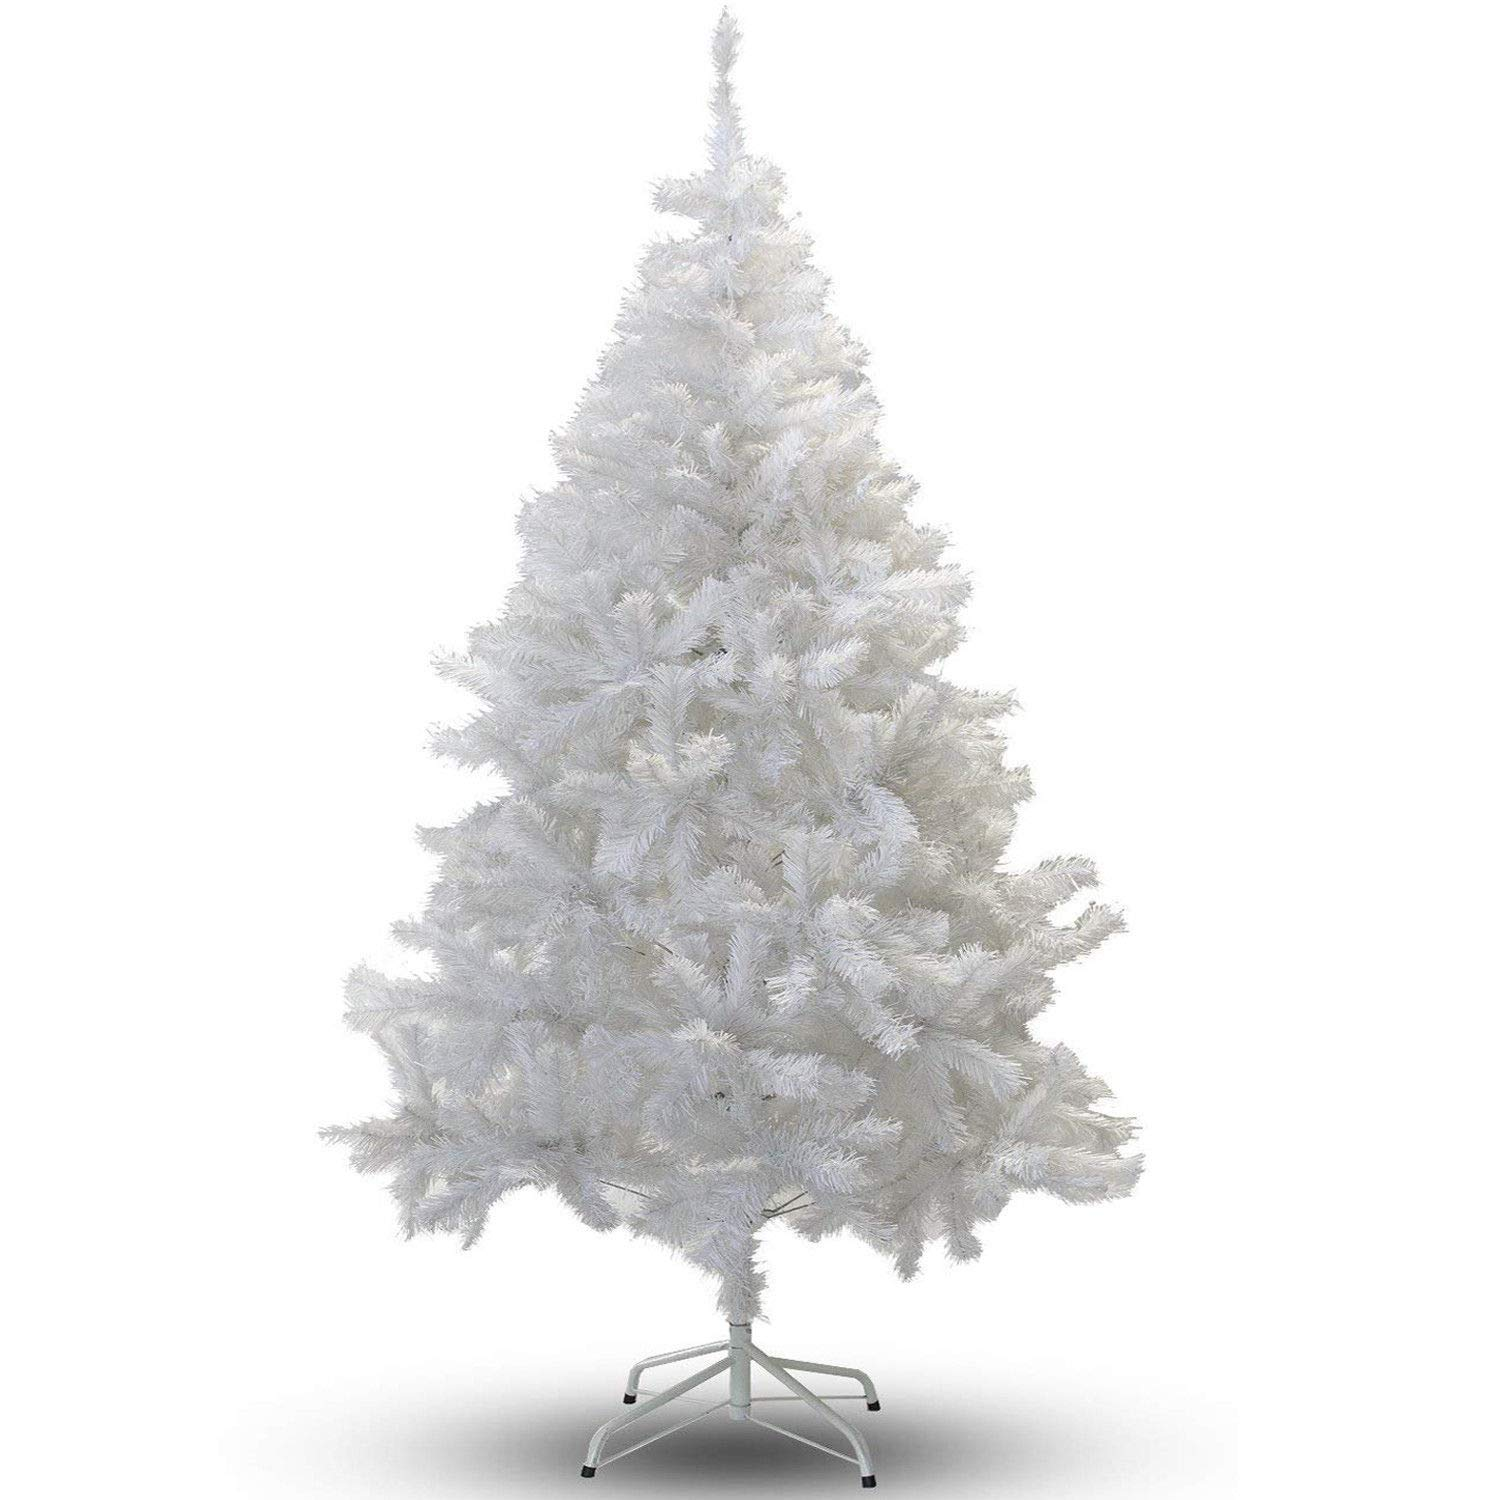 6FT White Premium Artificial Christmas/Xmas Tree: Amazon.co.uk ...